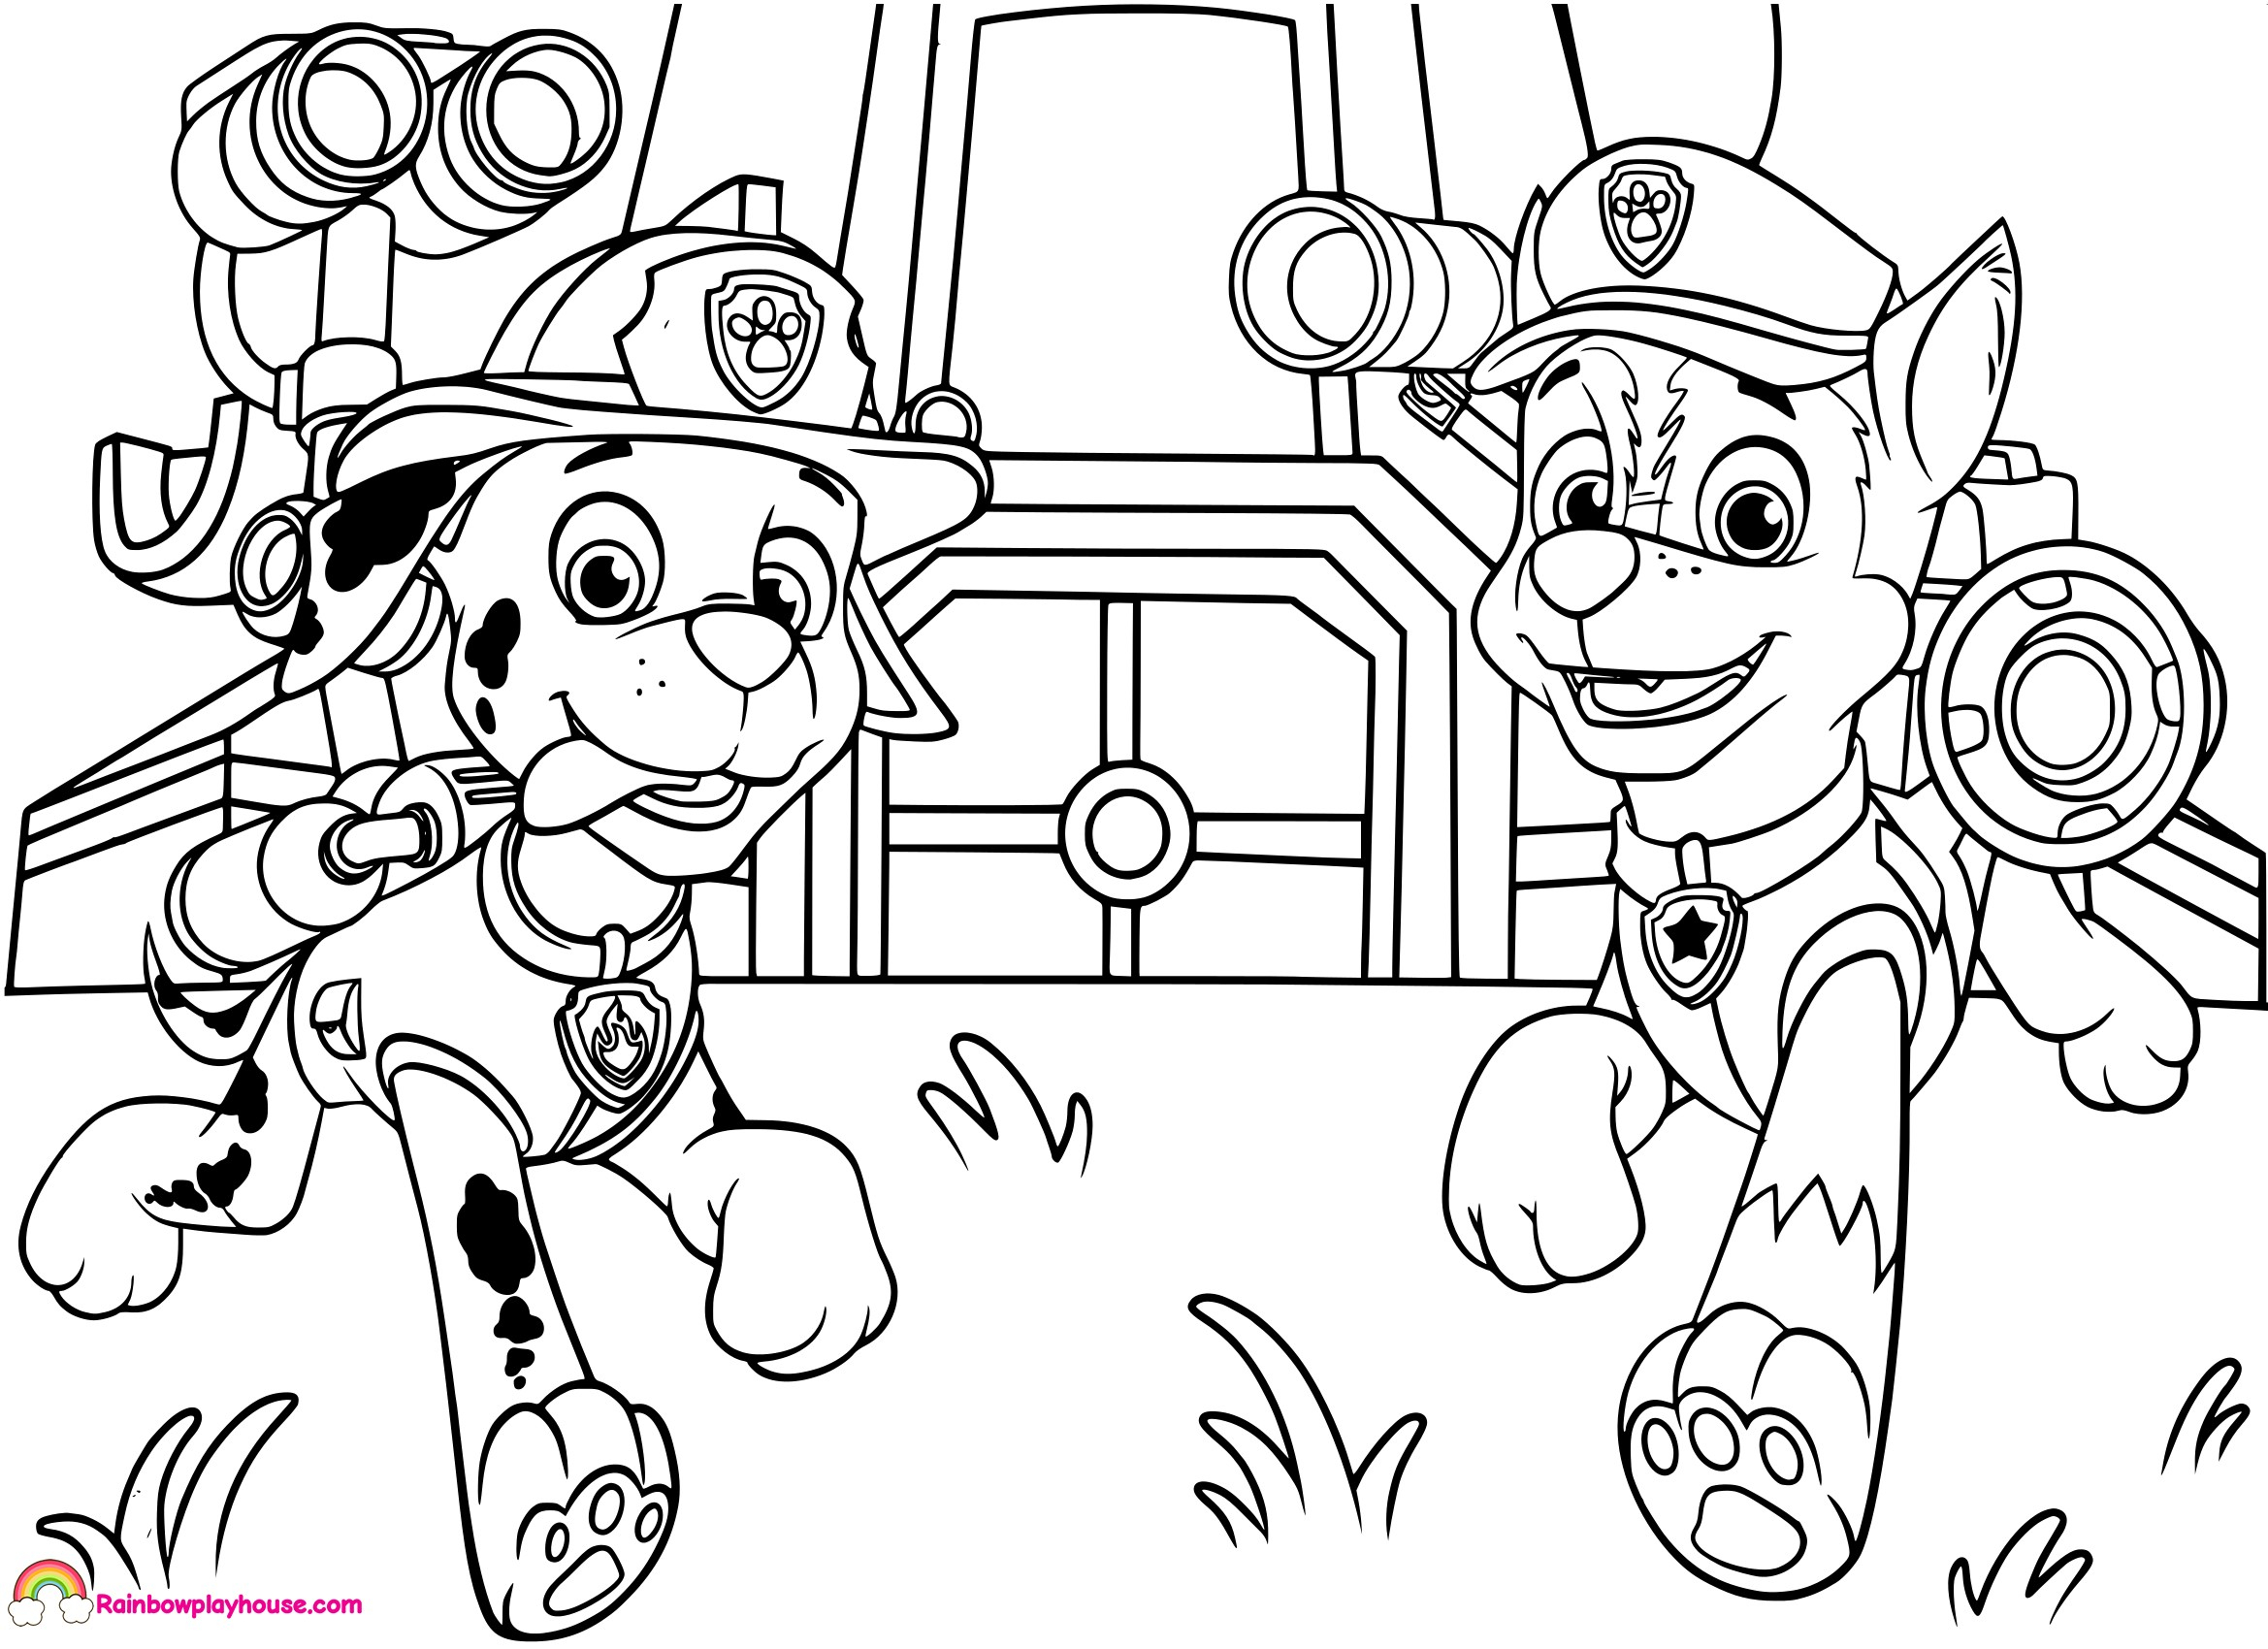 coloring paw patrol printouts paw patrol characters coloring pages at getcoloringscom patrol paw coloring printouts